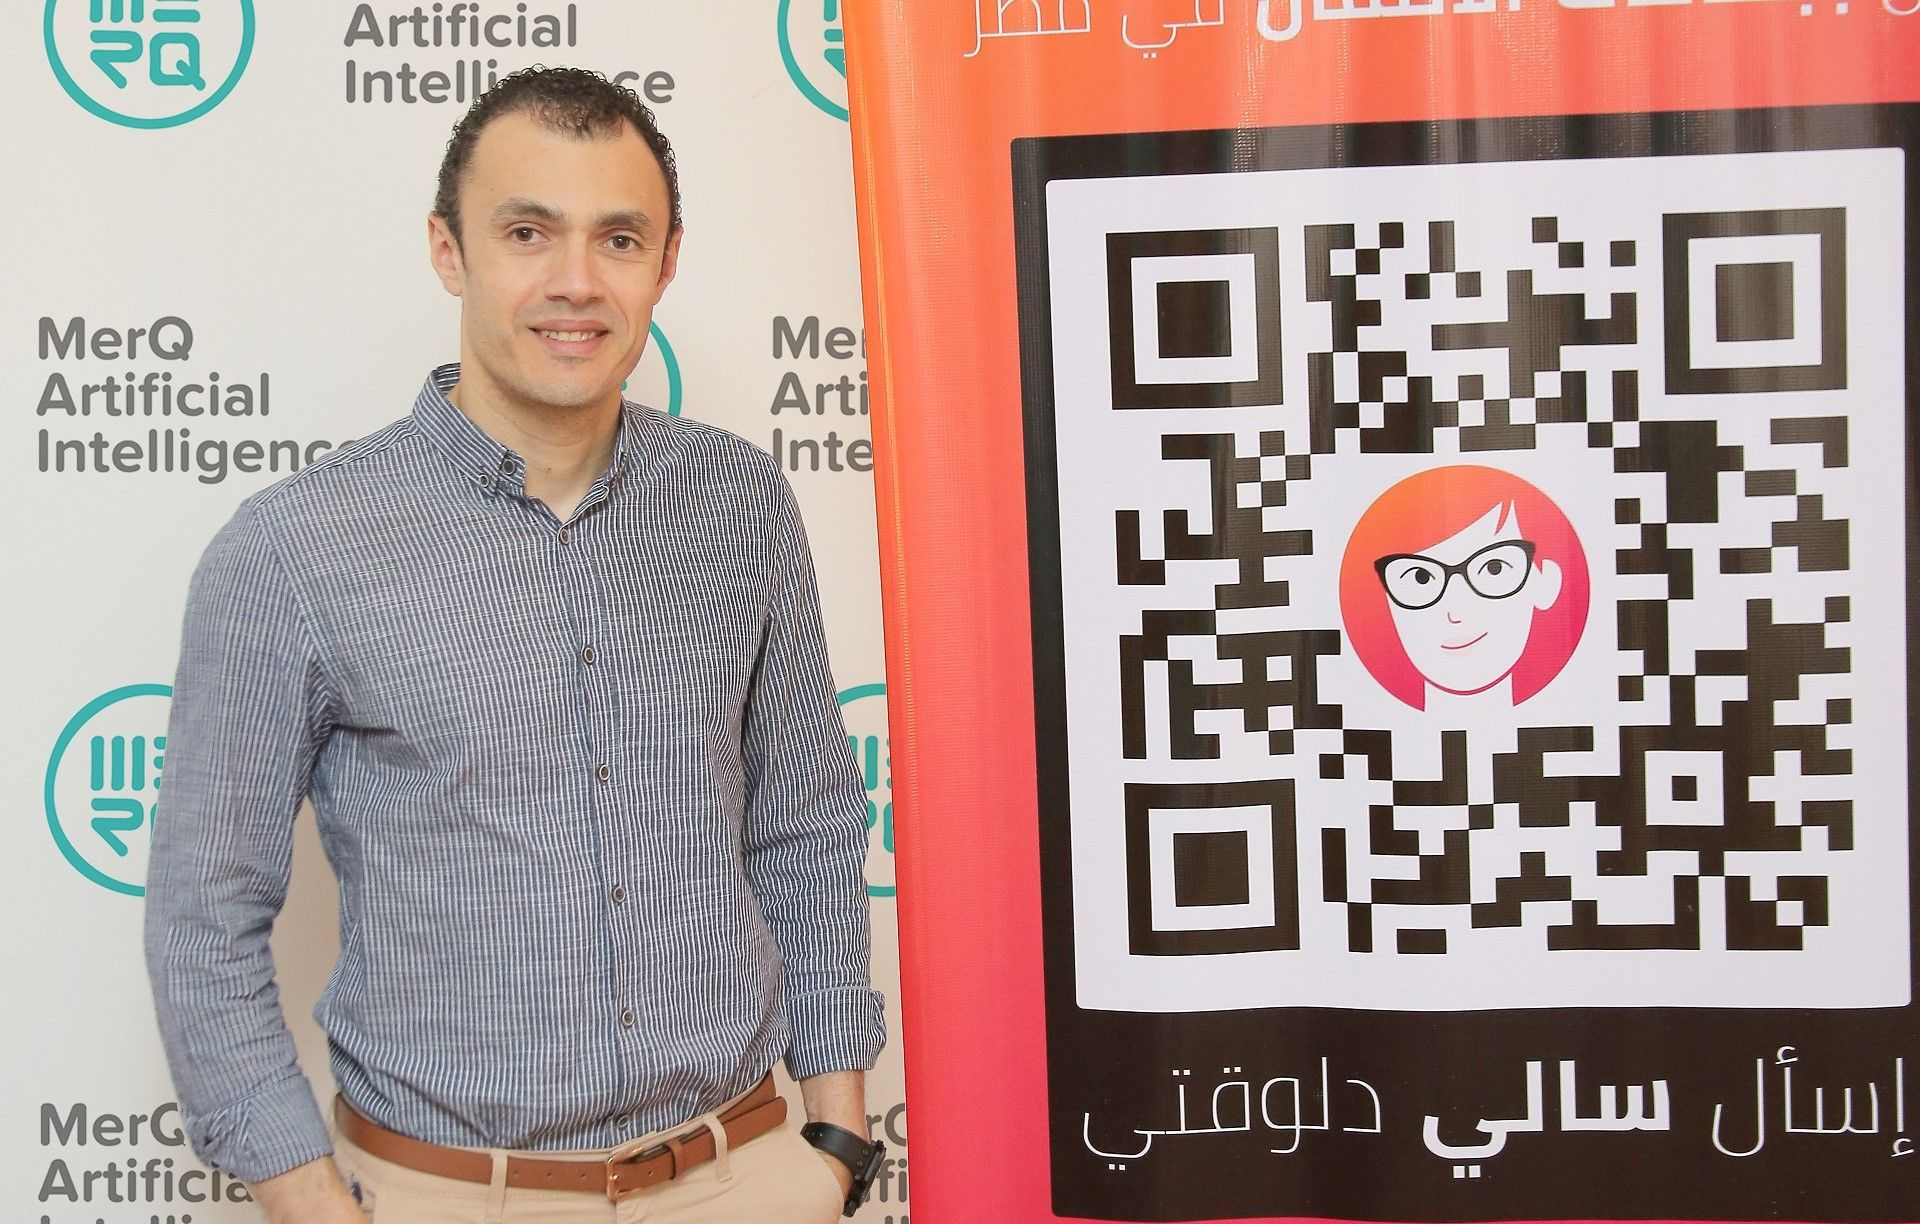 Egyptian AI startup, MerQ has closed its SEED funding round